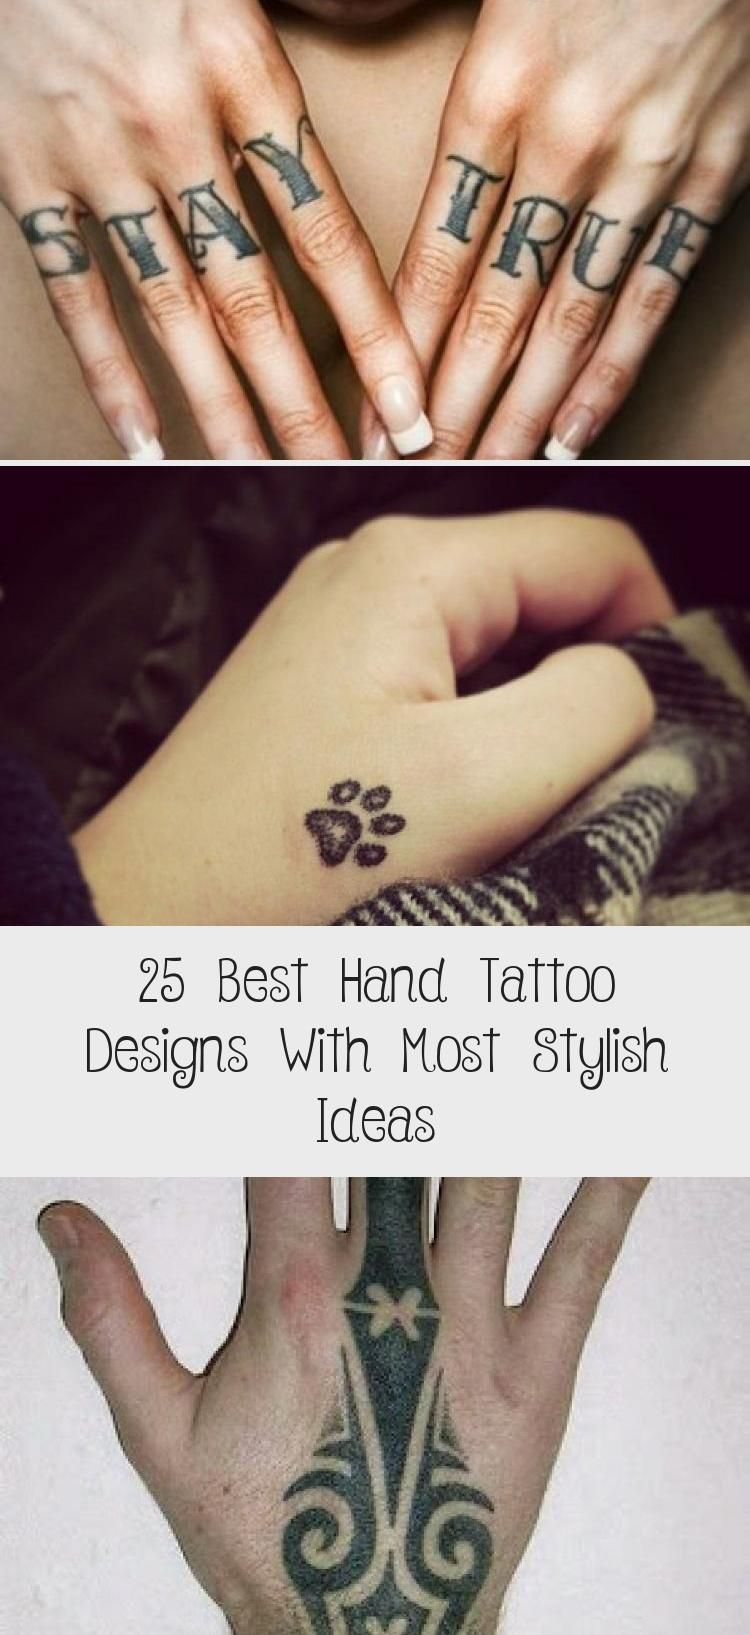 25 Best Meaningful Hand Tattoo Designs For Men And Women Tattoodesignswolf Tattoodesignsunique Thightattoo In 2020 Simple Hand Tattoos Finger Tattoo Designs Tattoos